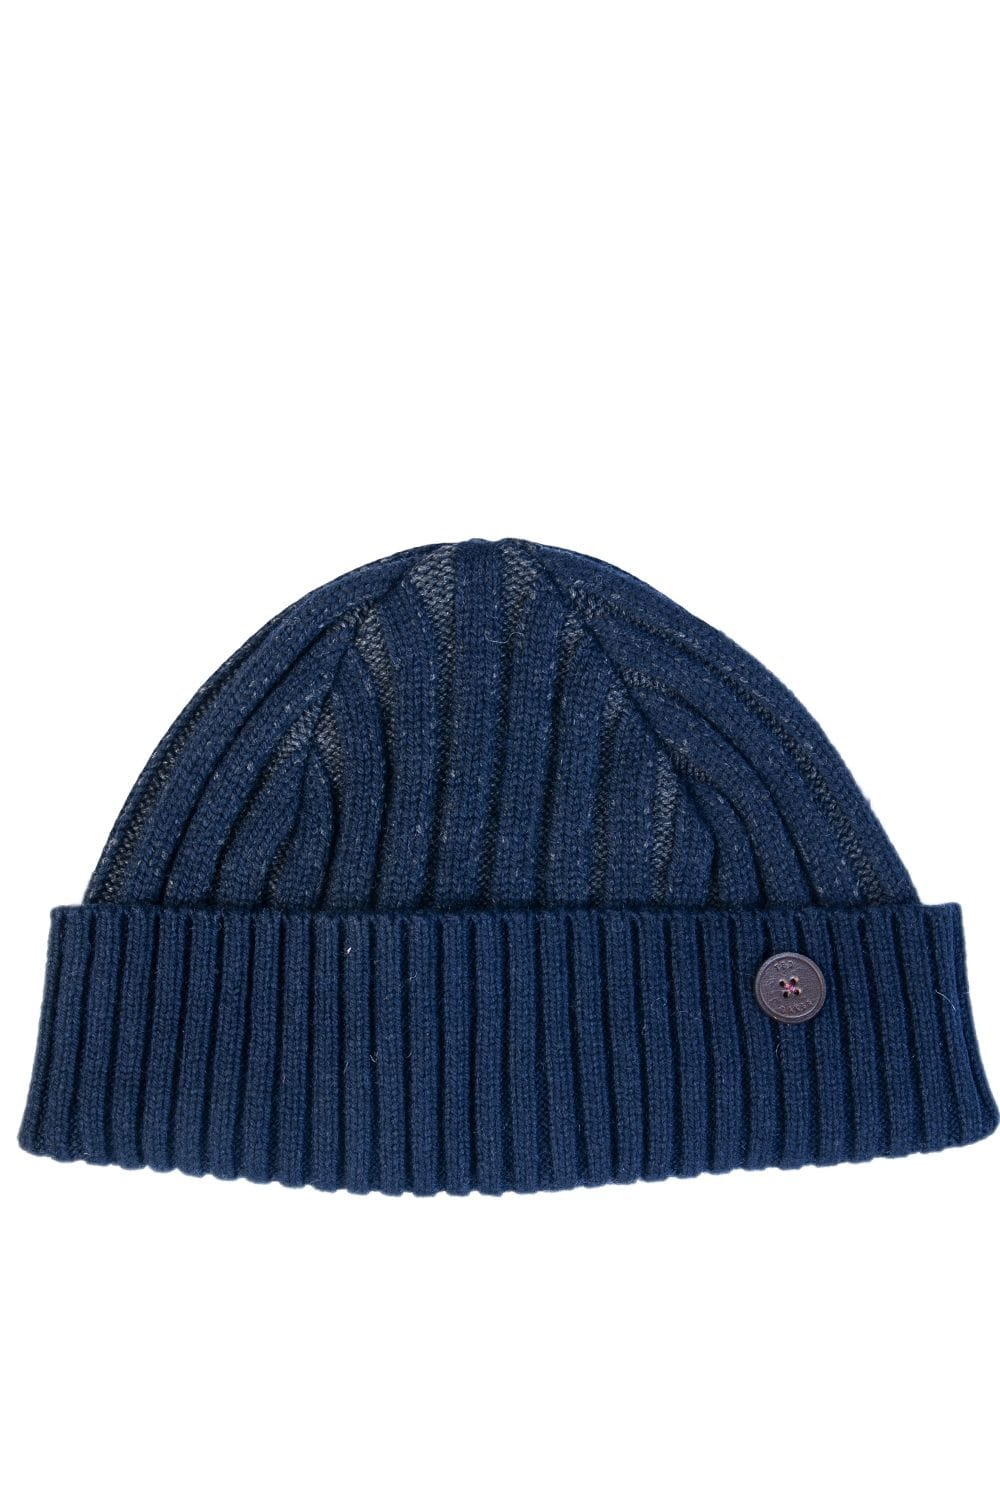 0f42d335f9b Ted Baker Beanie Hat XC8M XN12 HATPENN - Accessories from Sage Clothing UK